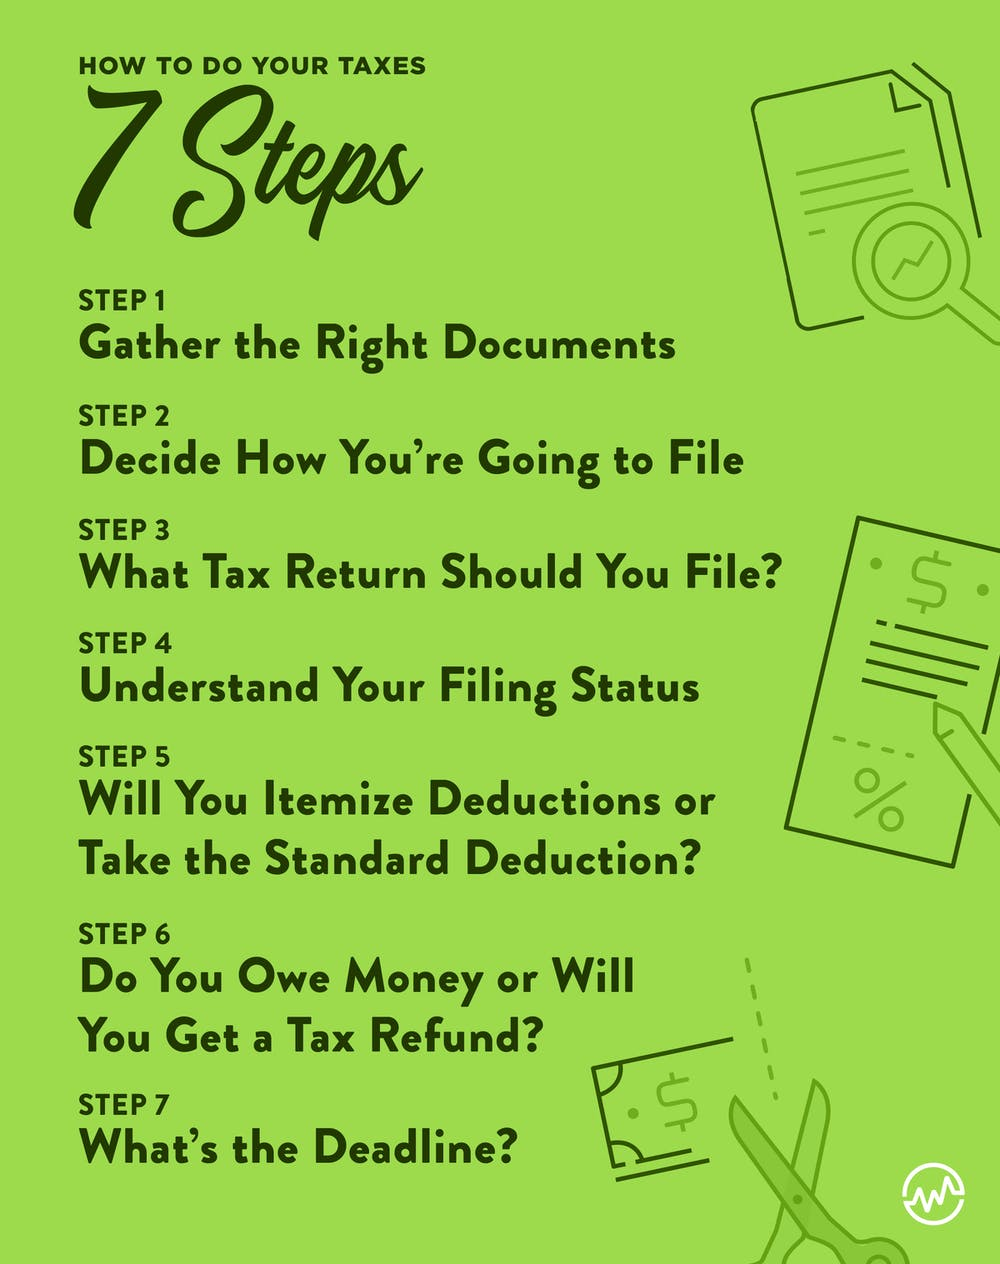 How To Do Your Taxes in 7 Steps